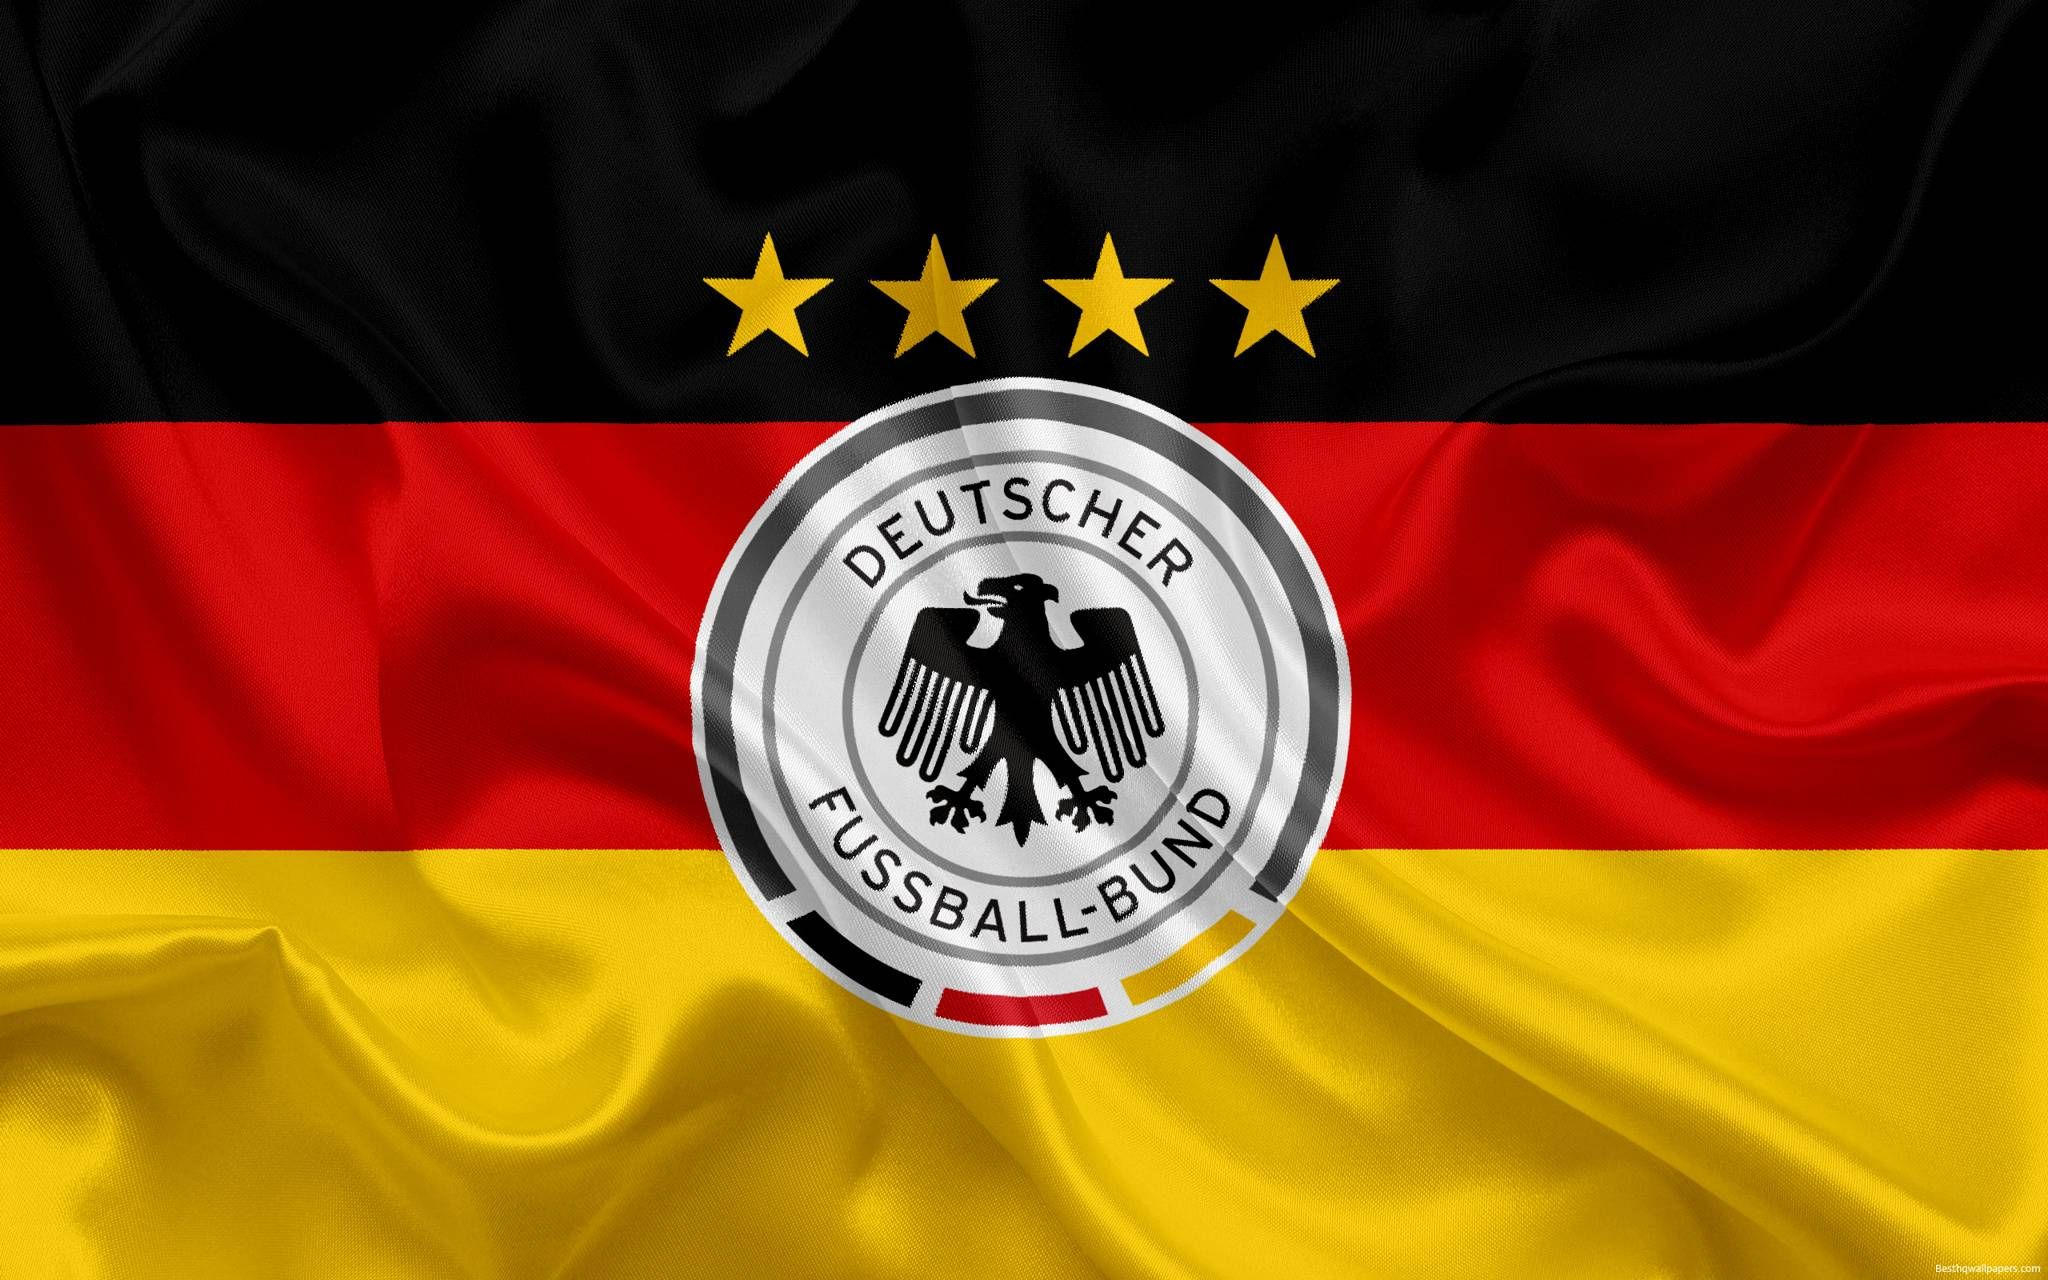 Download Germany Football Wallpaper By Elnaztajaddod 86 Free On Zedge Now Browse Mill In 2020 Germany Football Germany National Football Team Football Team Logos